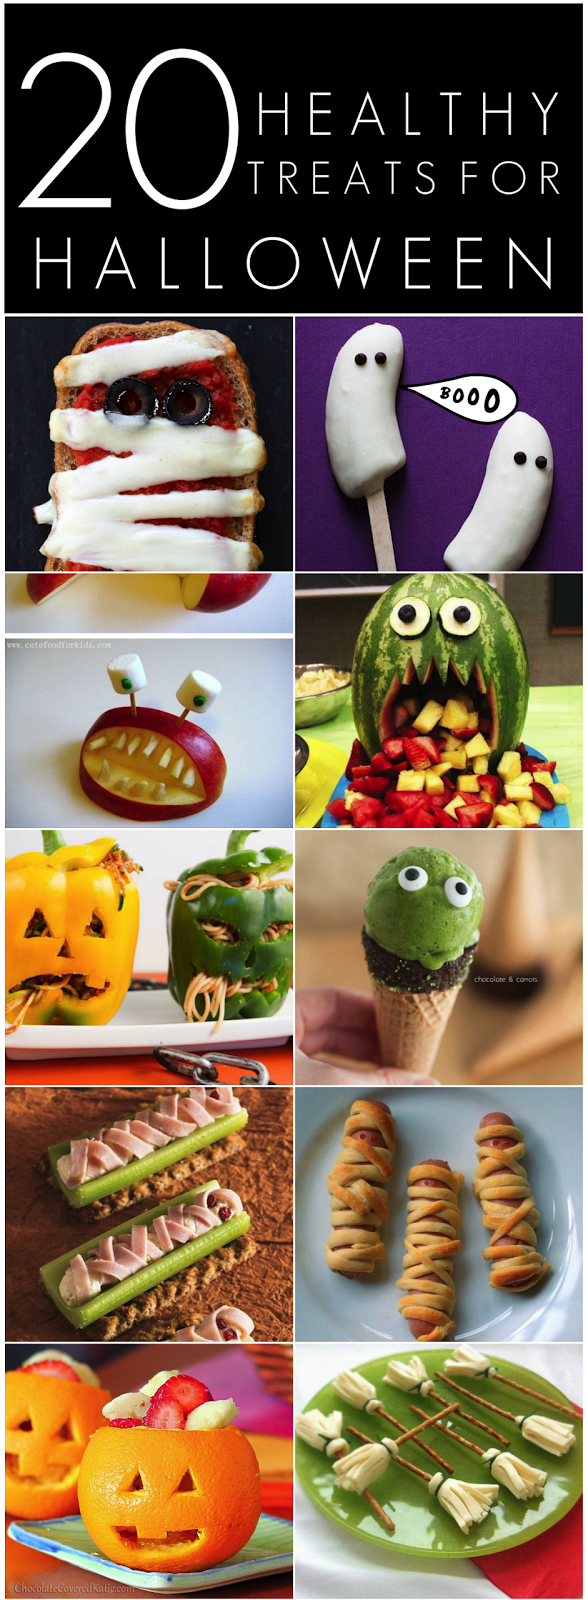 20 Healthy Halloween Treats For kids